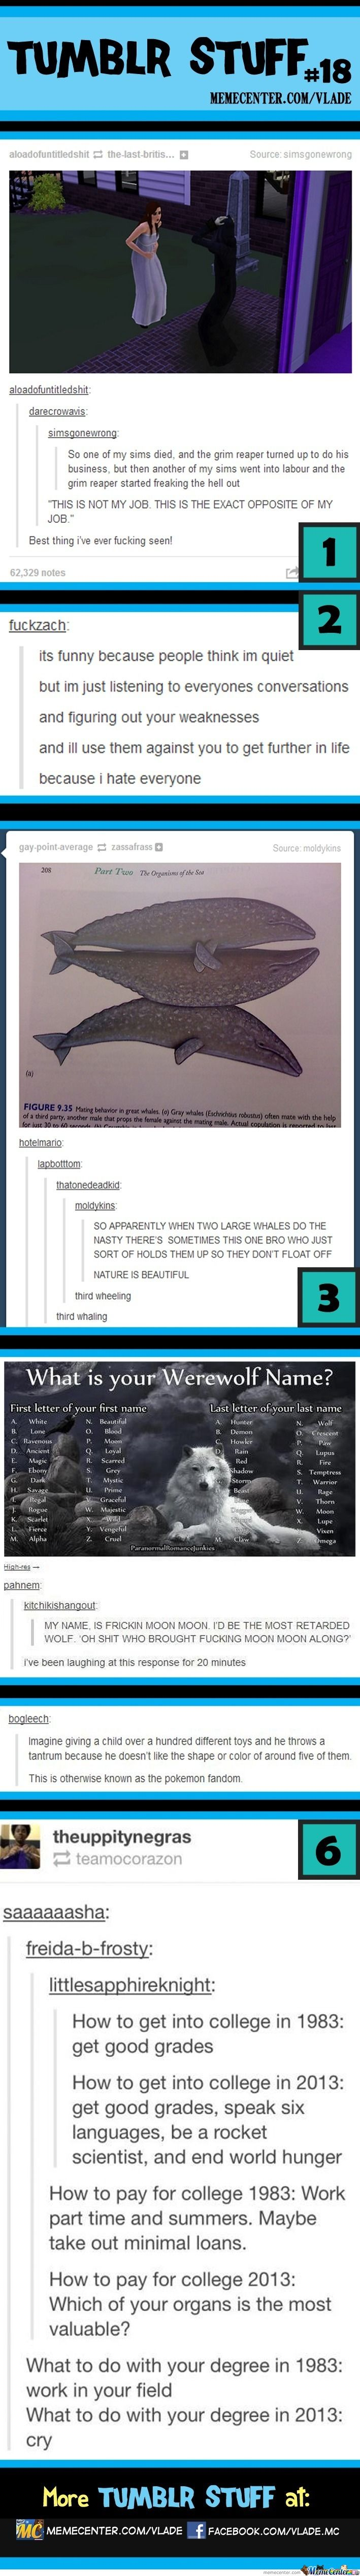 Tumblr Stuff #18....excuse the language, but this is too funny! I LOVE THE FIRST ONE IT HAS HAPPEN TO ME